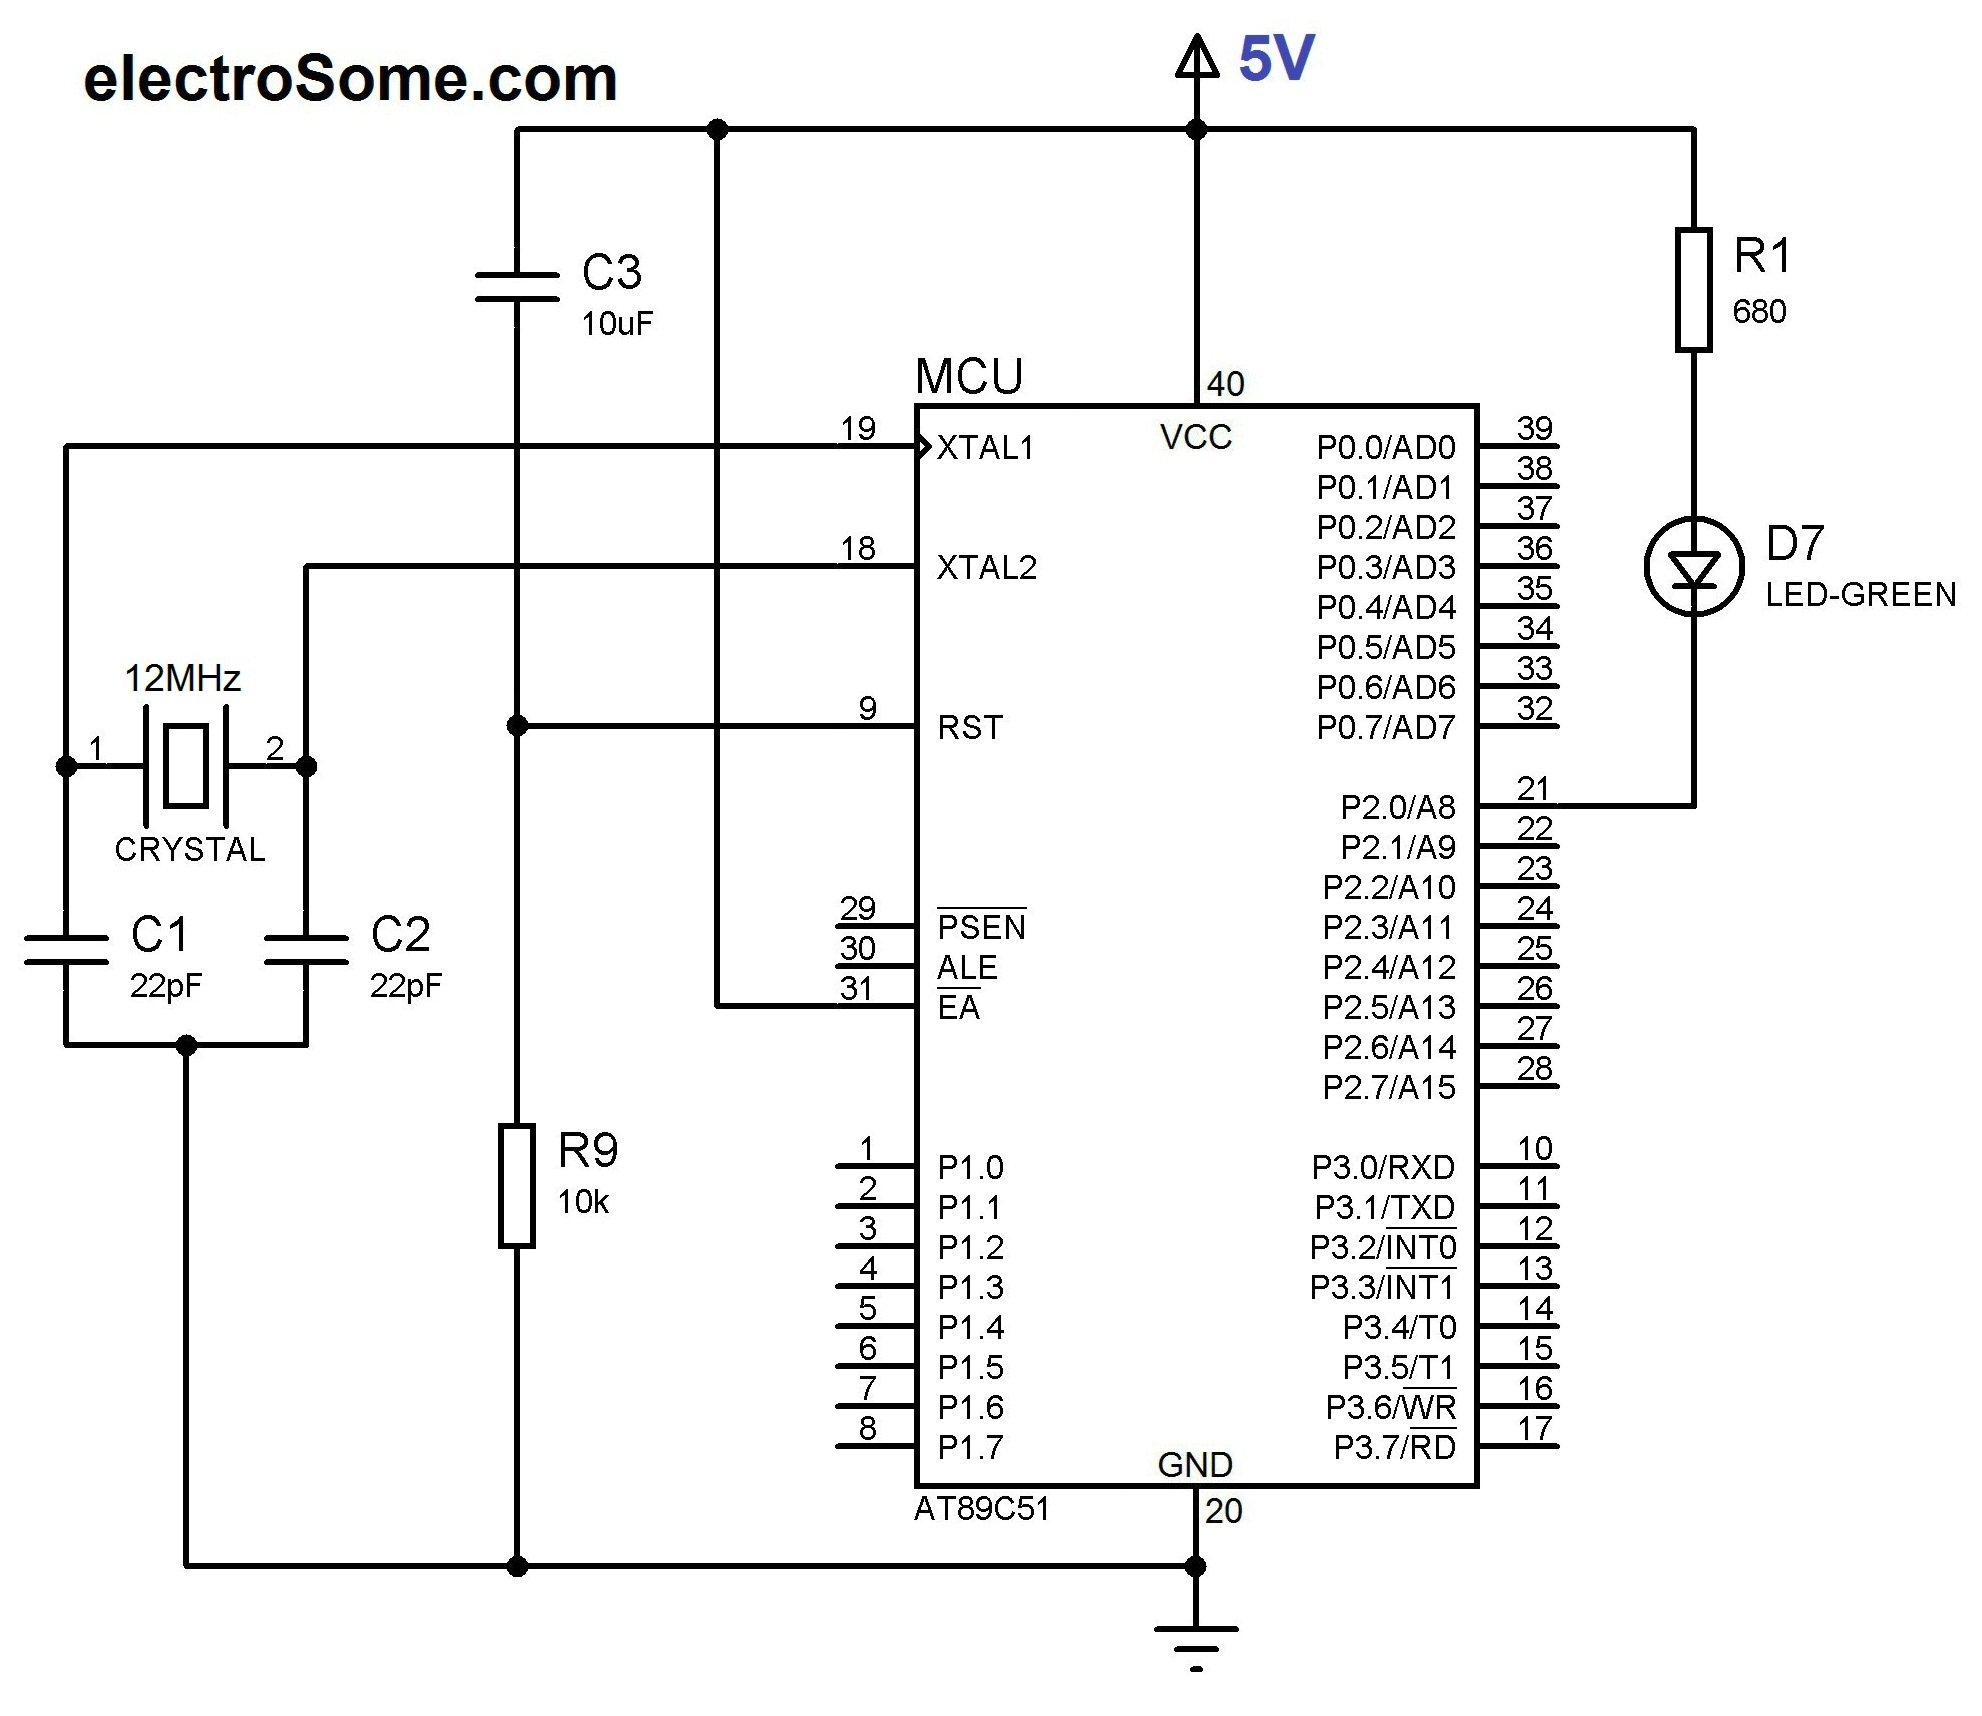 Led Blinking Using 8051 Microcontroller And Keil C At89c51 6 Hour Timer Circuit Diagram